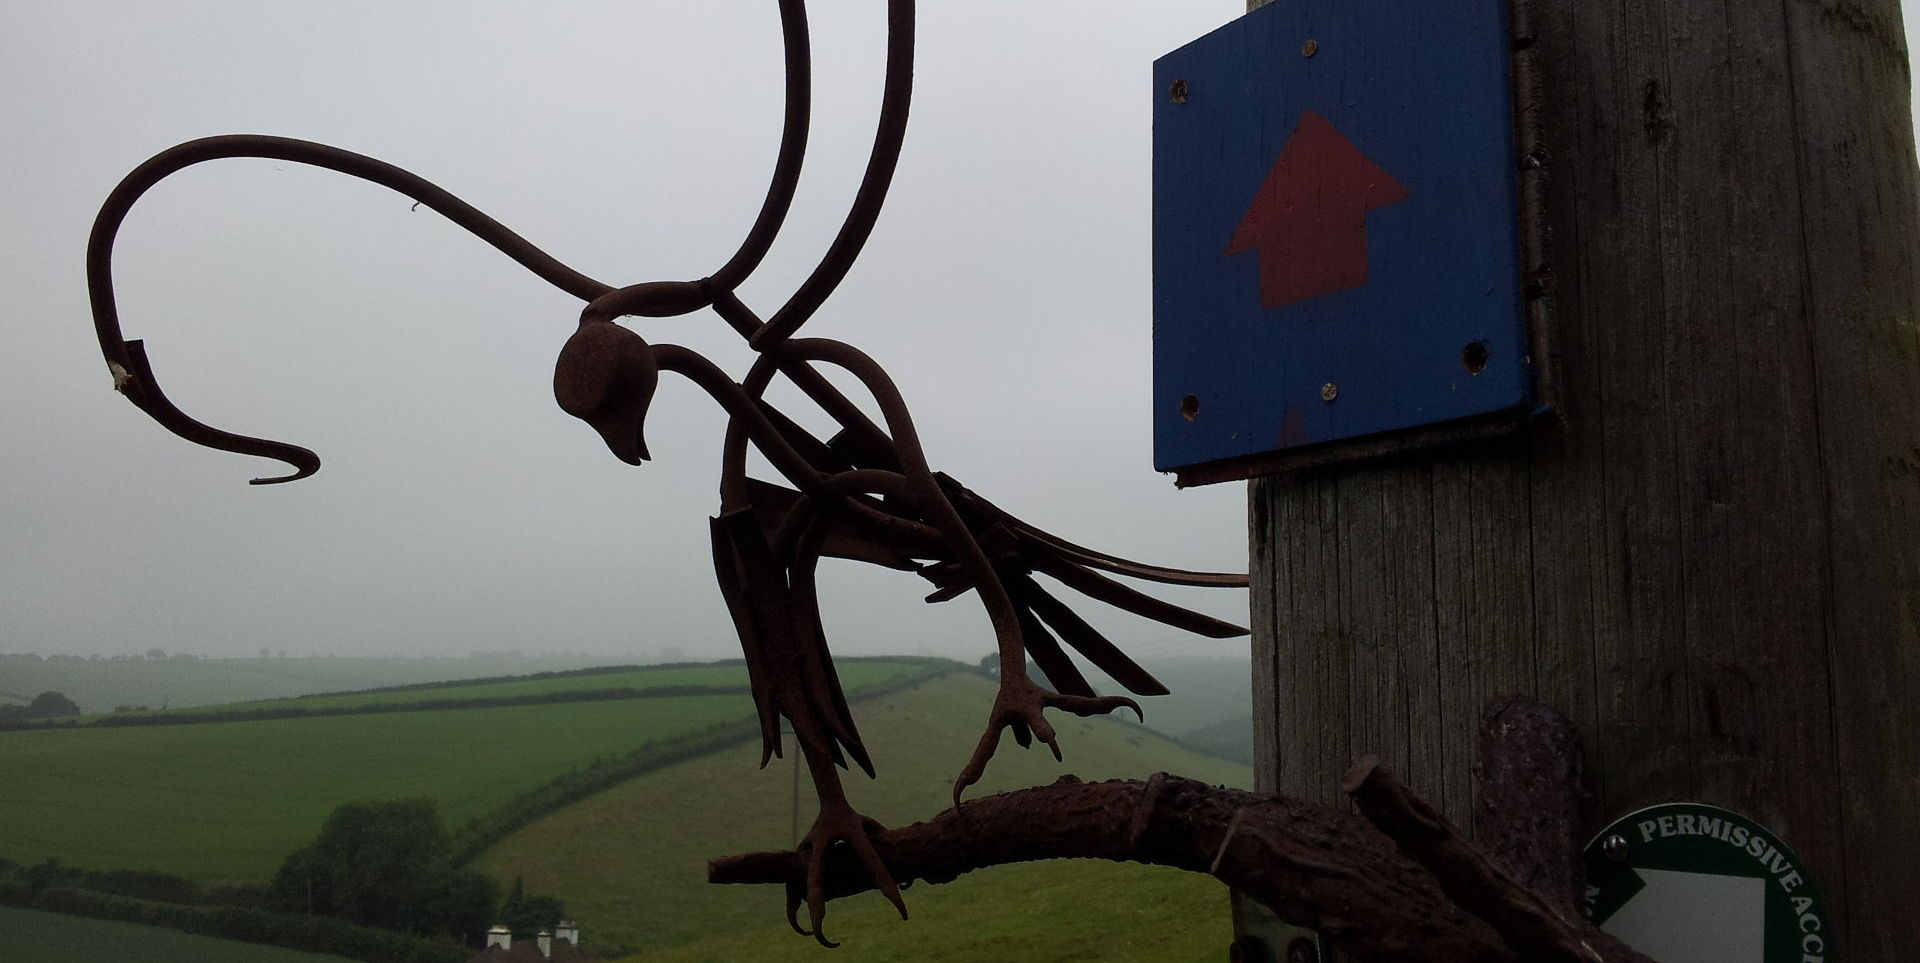 One of the art works about to lift off from West Town Farm